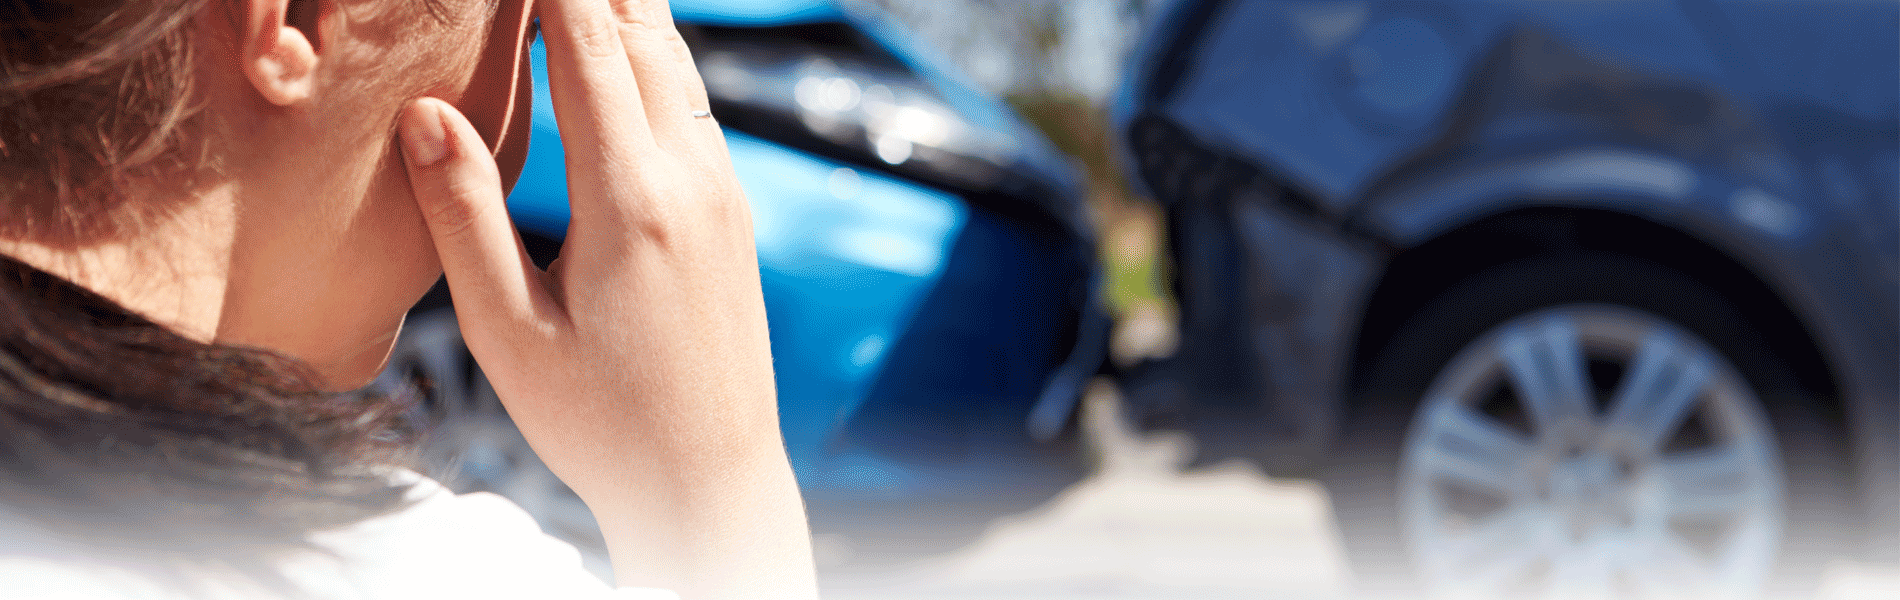 Auto Accident Lawyers in Little Rock, Arkansas